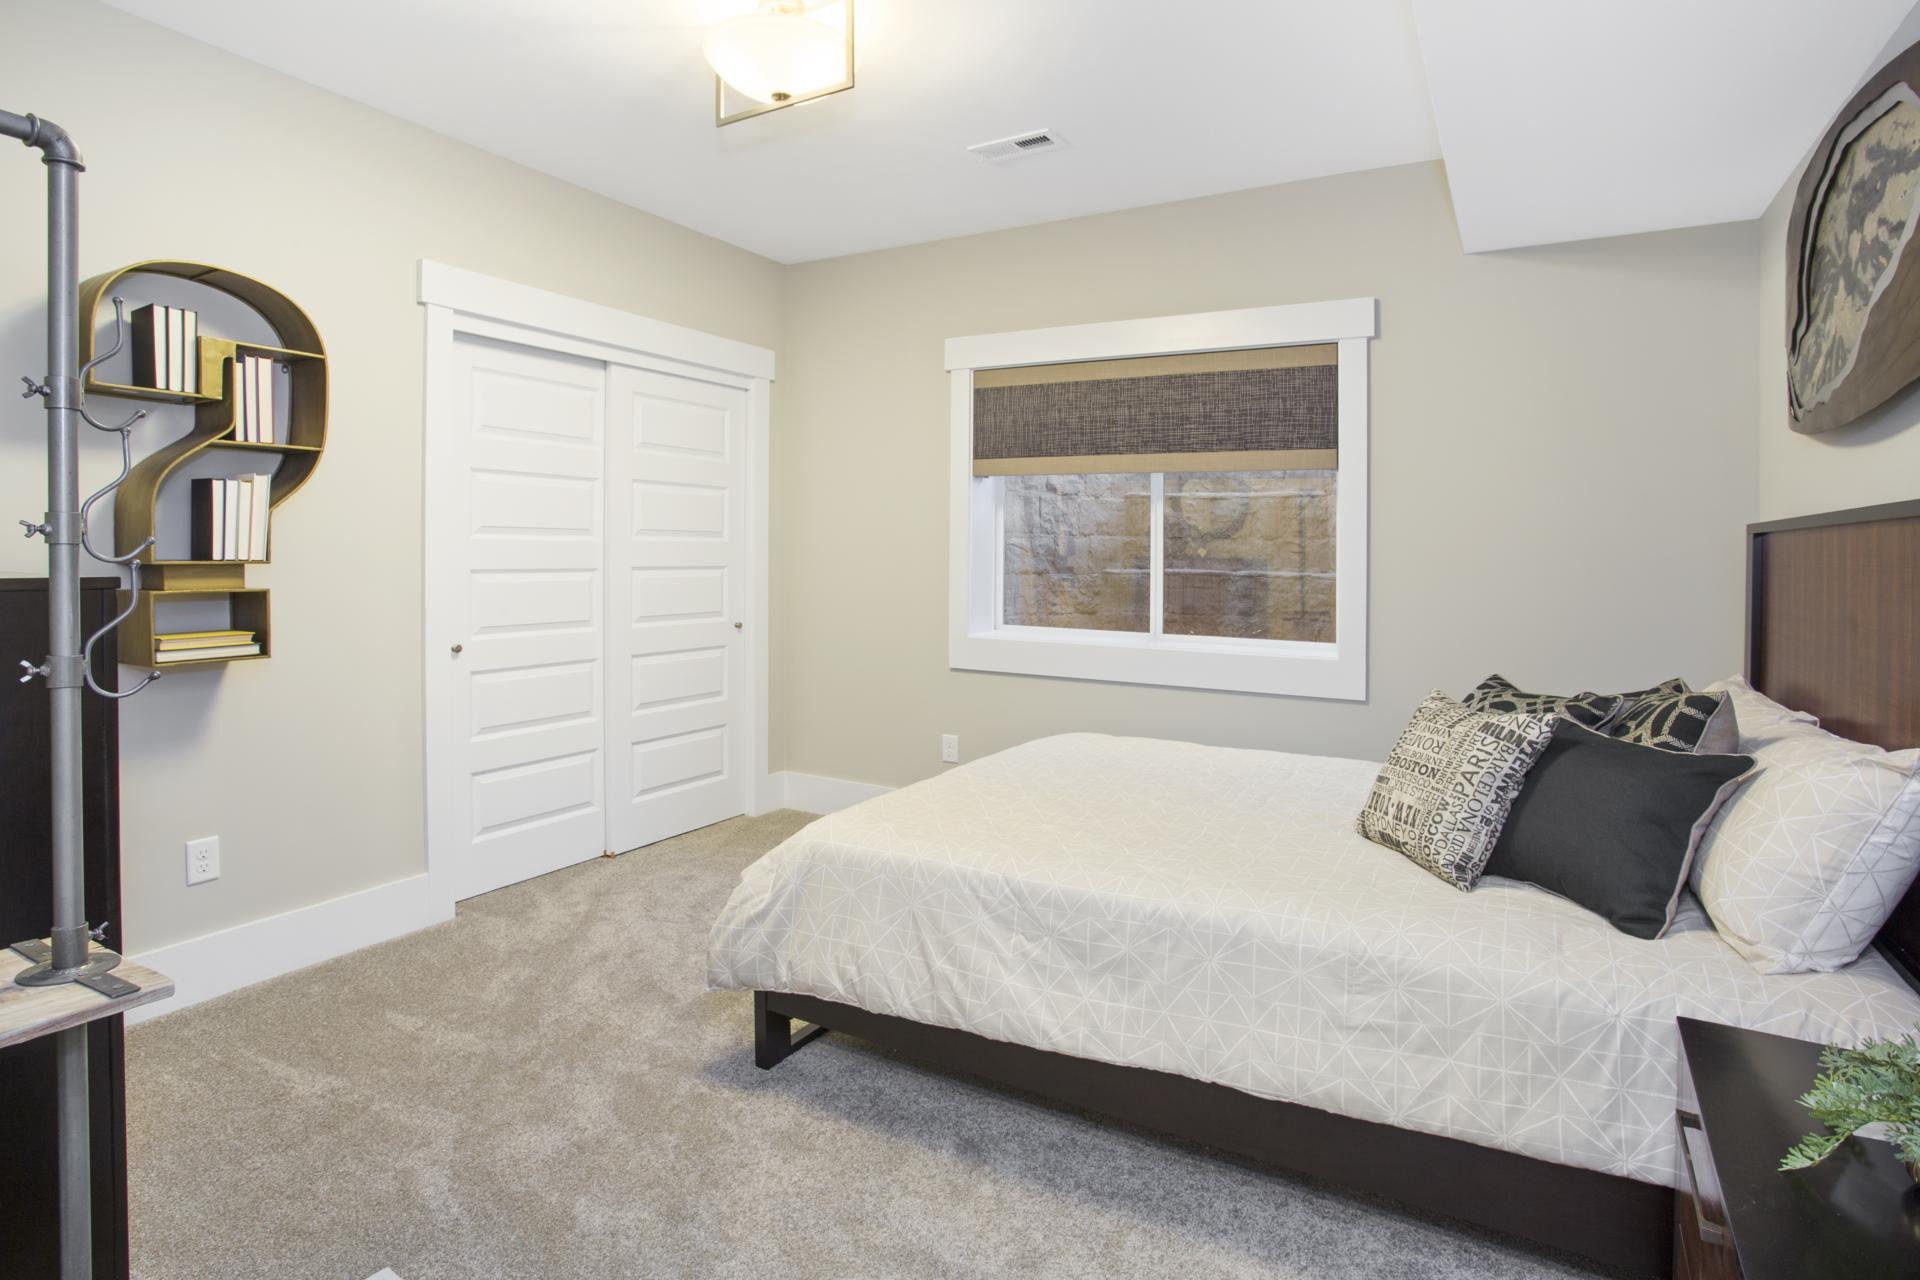 Bedroom featured in the Sebastian By Drees Homes in Indianapolis, IN